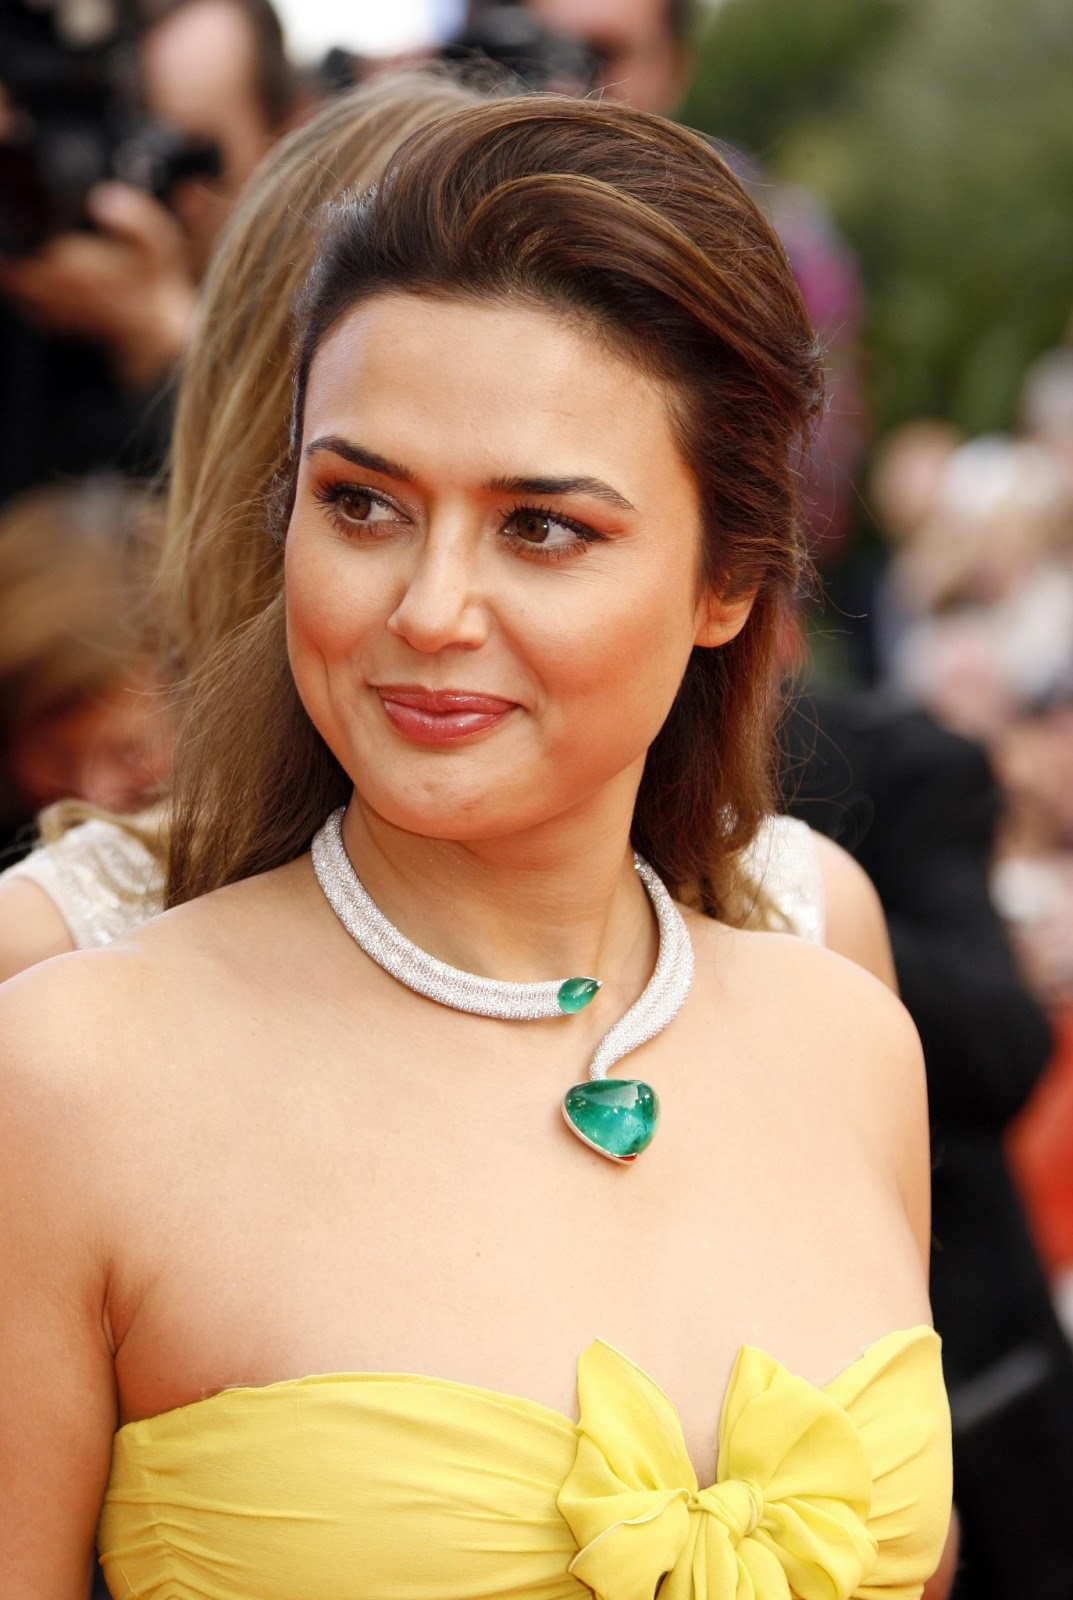 Download Free Hd Wallpapers Of Preity Zinta  Download -1005